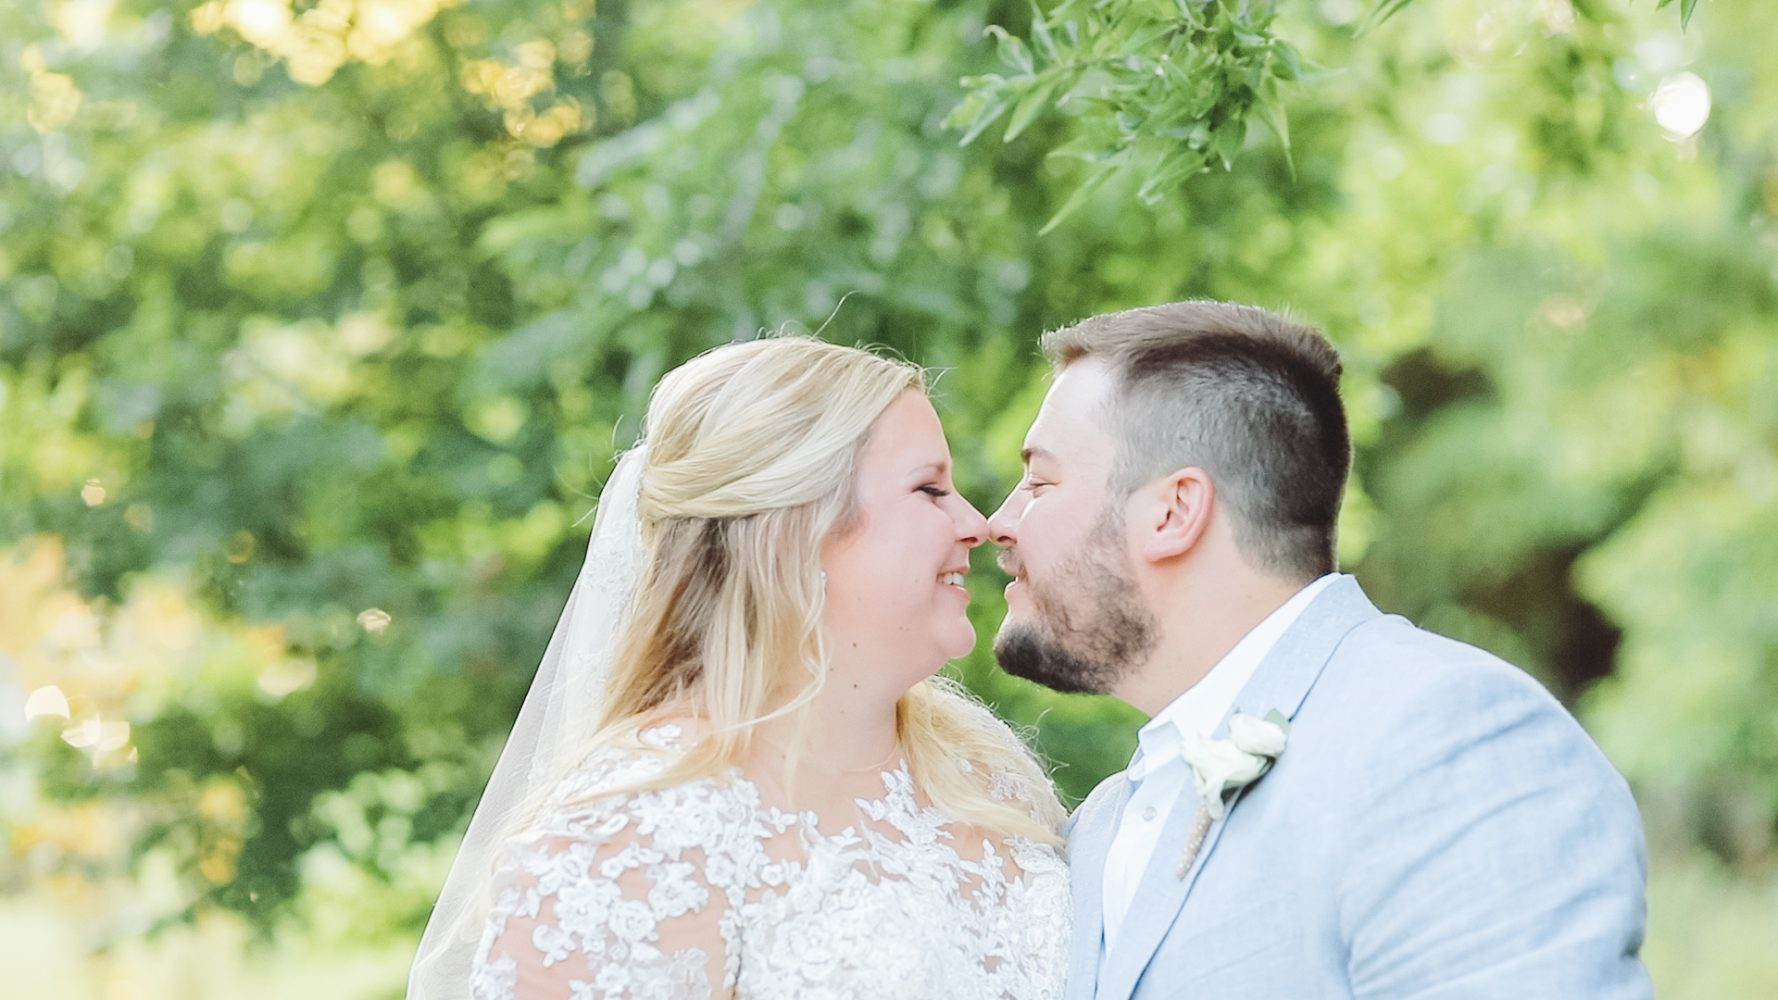 Aspen  + Eibert | Grapevine, Texas | The Laurel